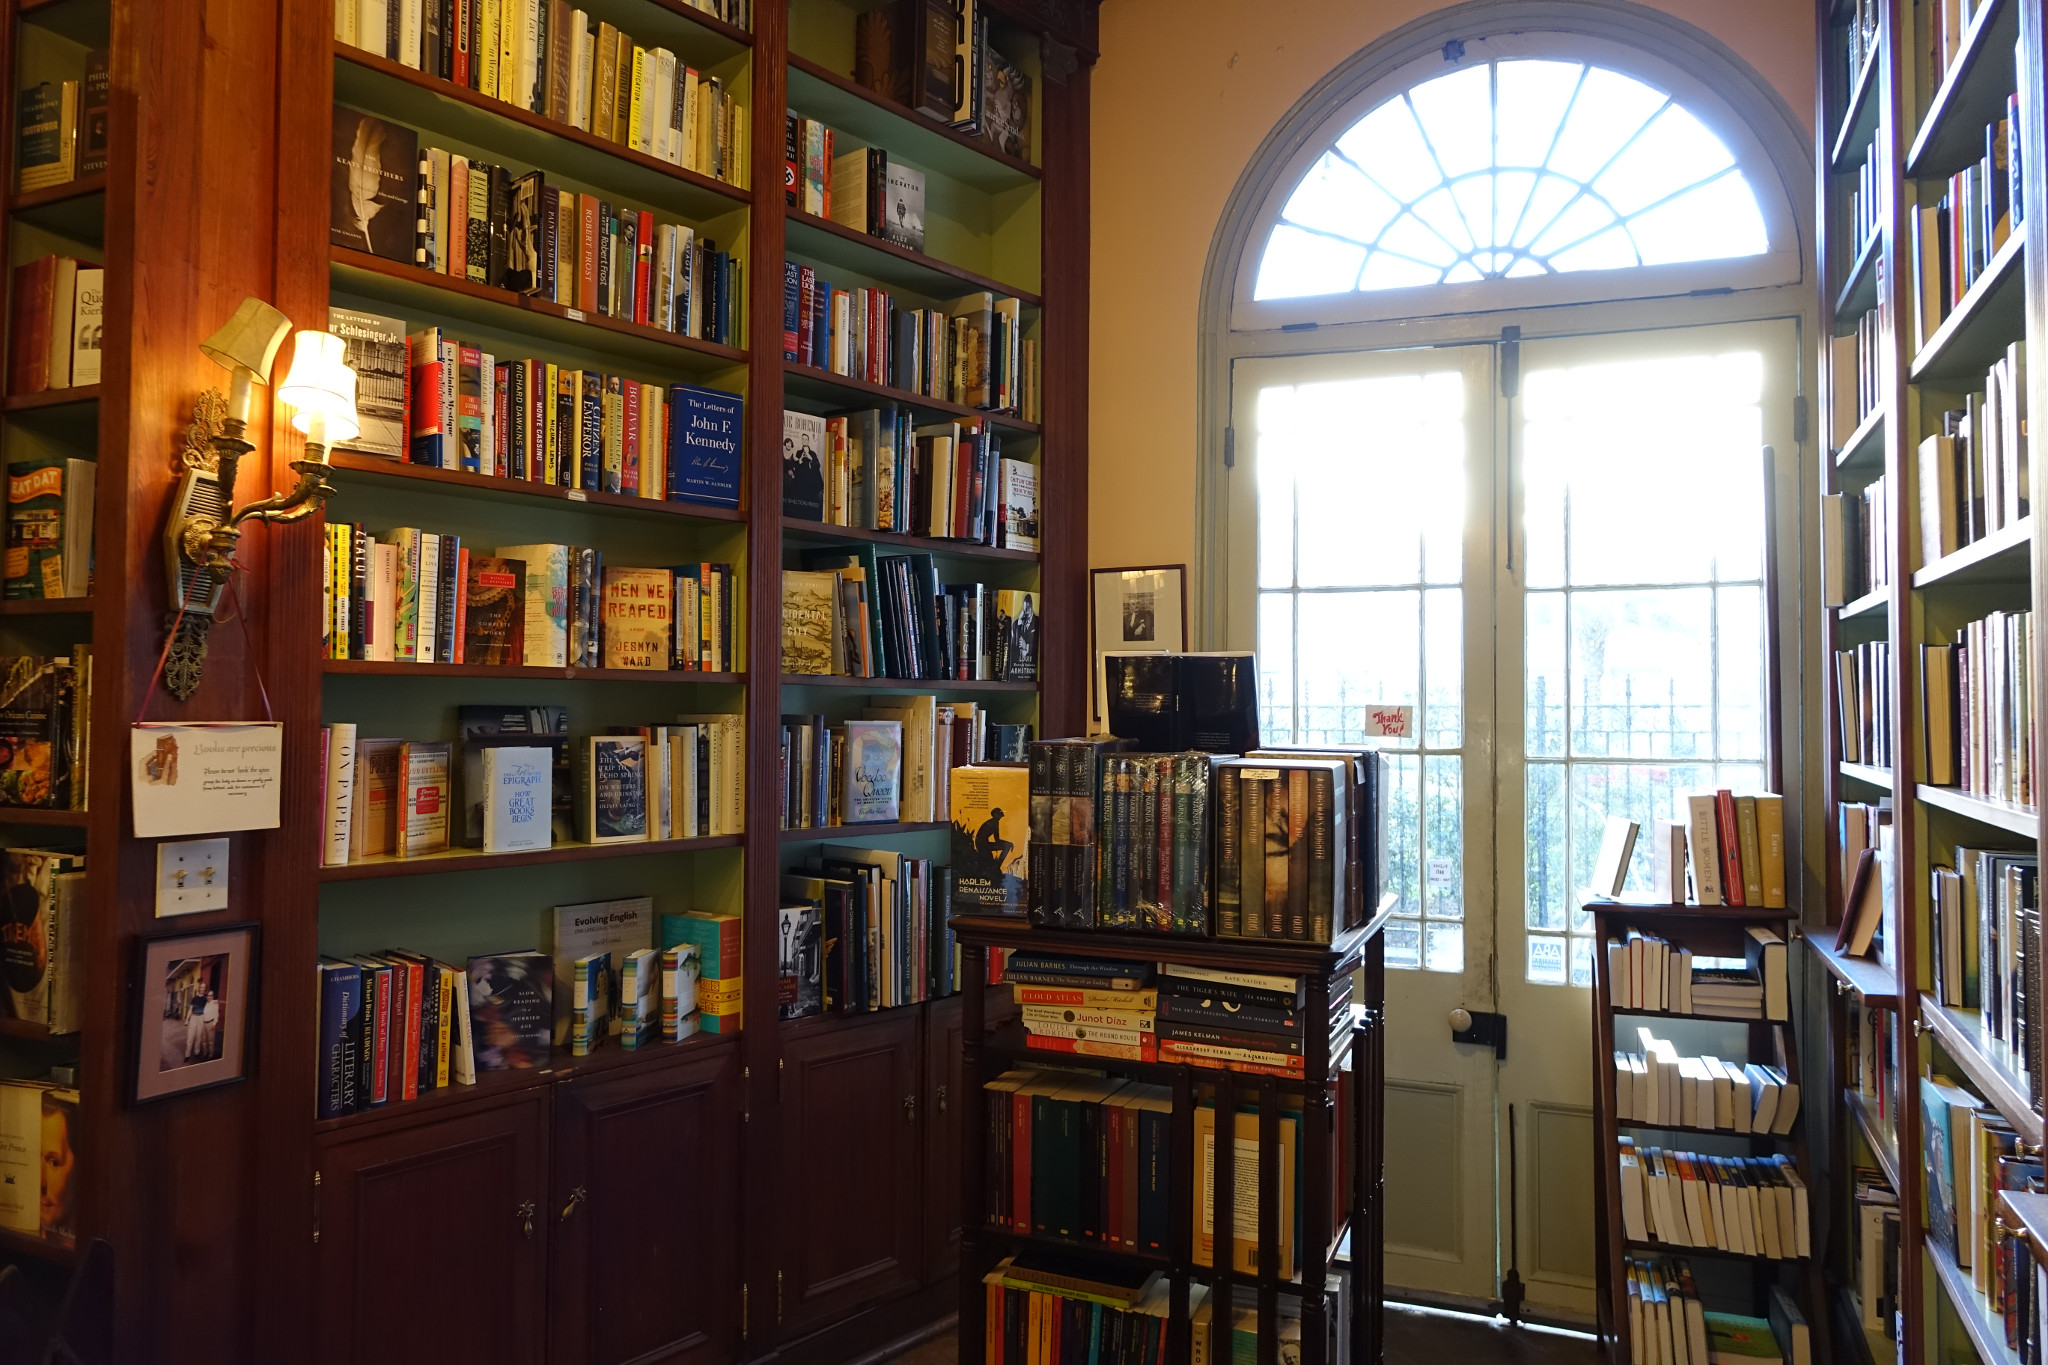 Faulkner House Books